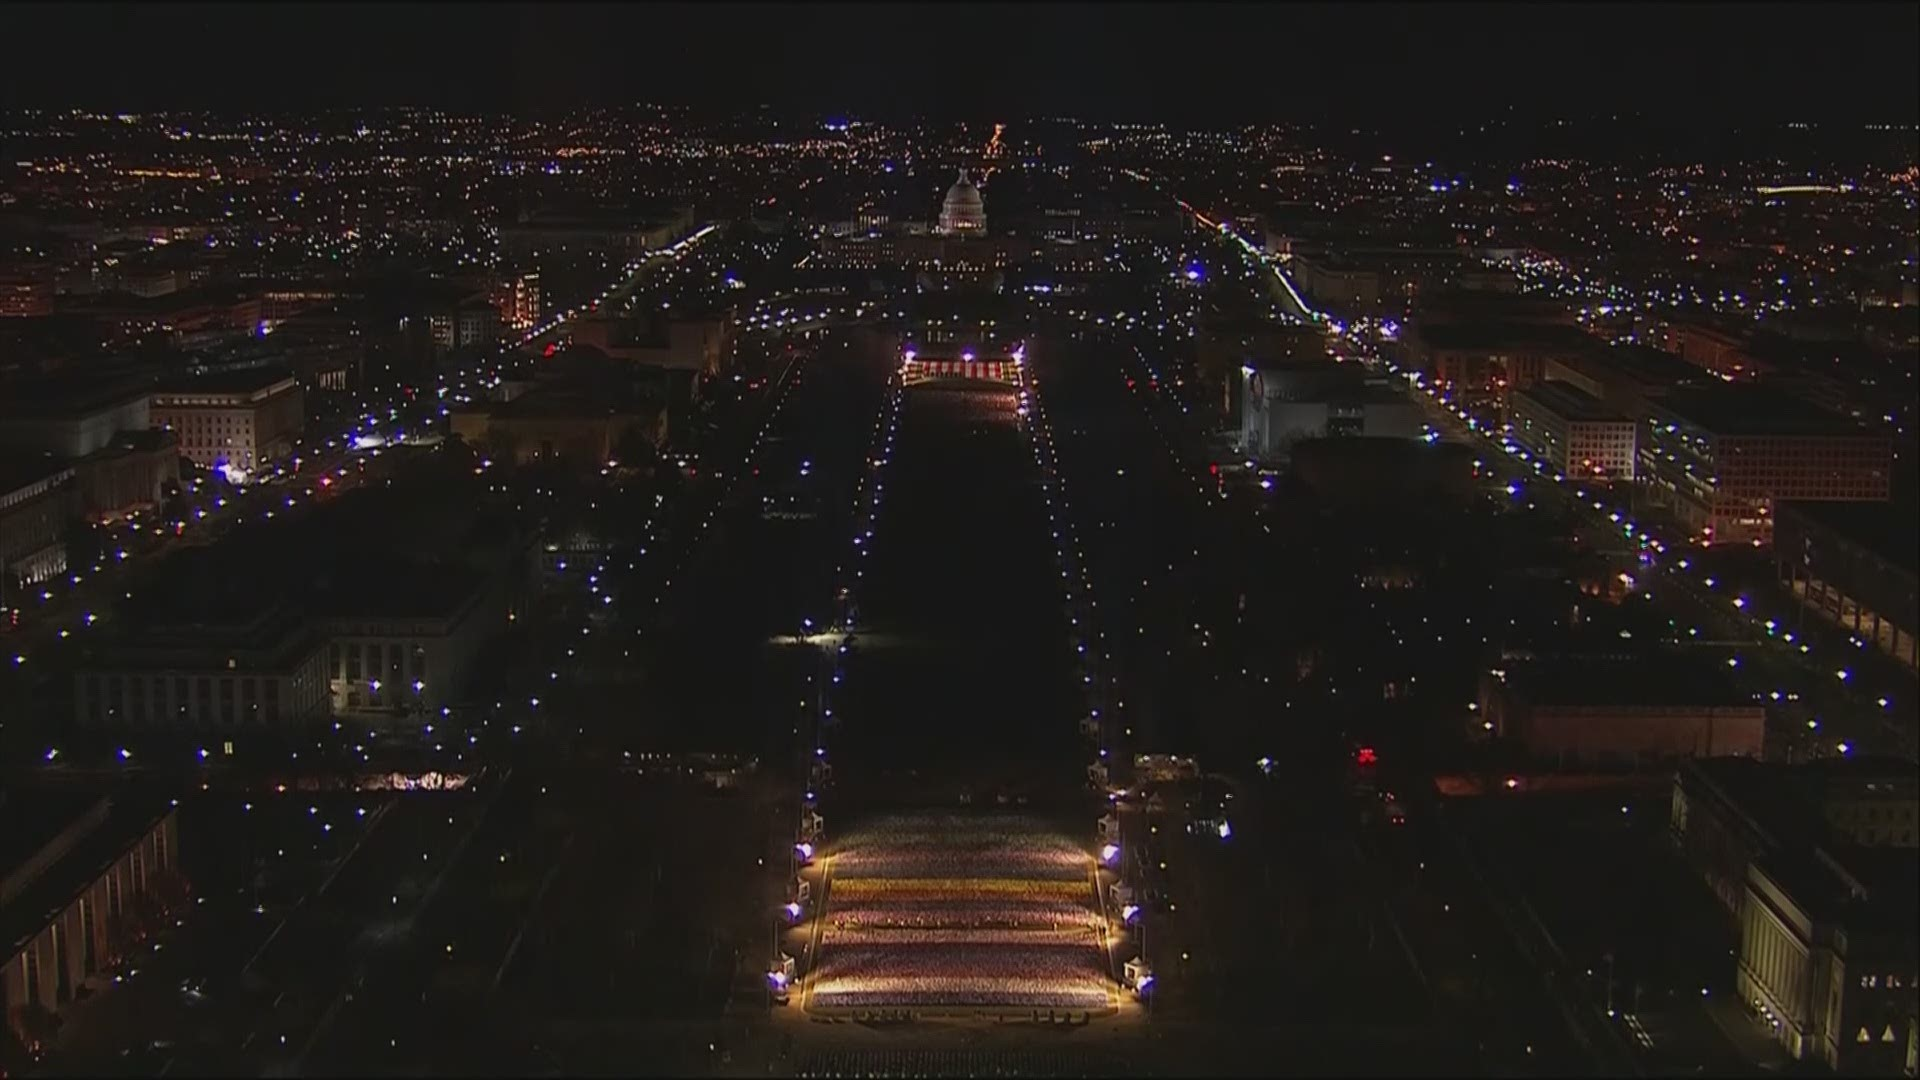 Inauguration Day 2021: Schedule of key events, ceremonies ...